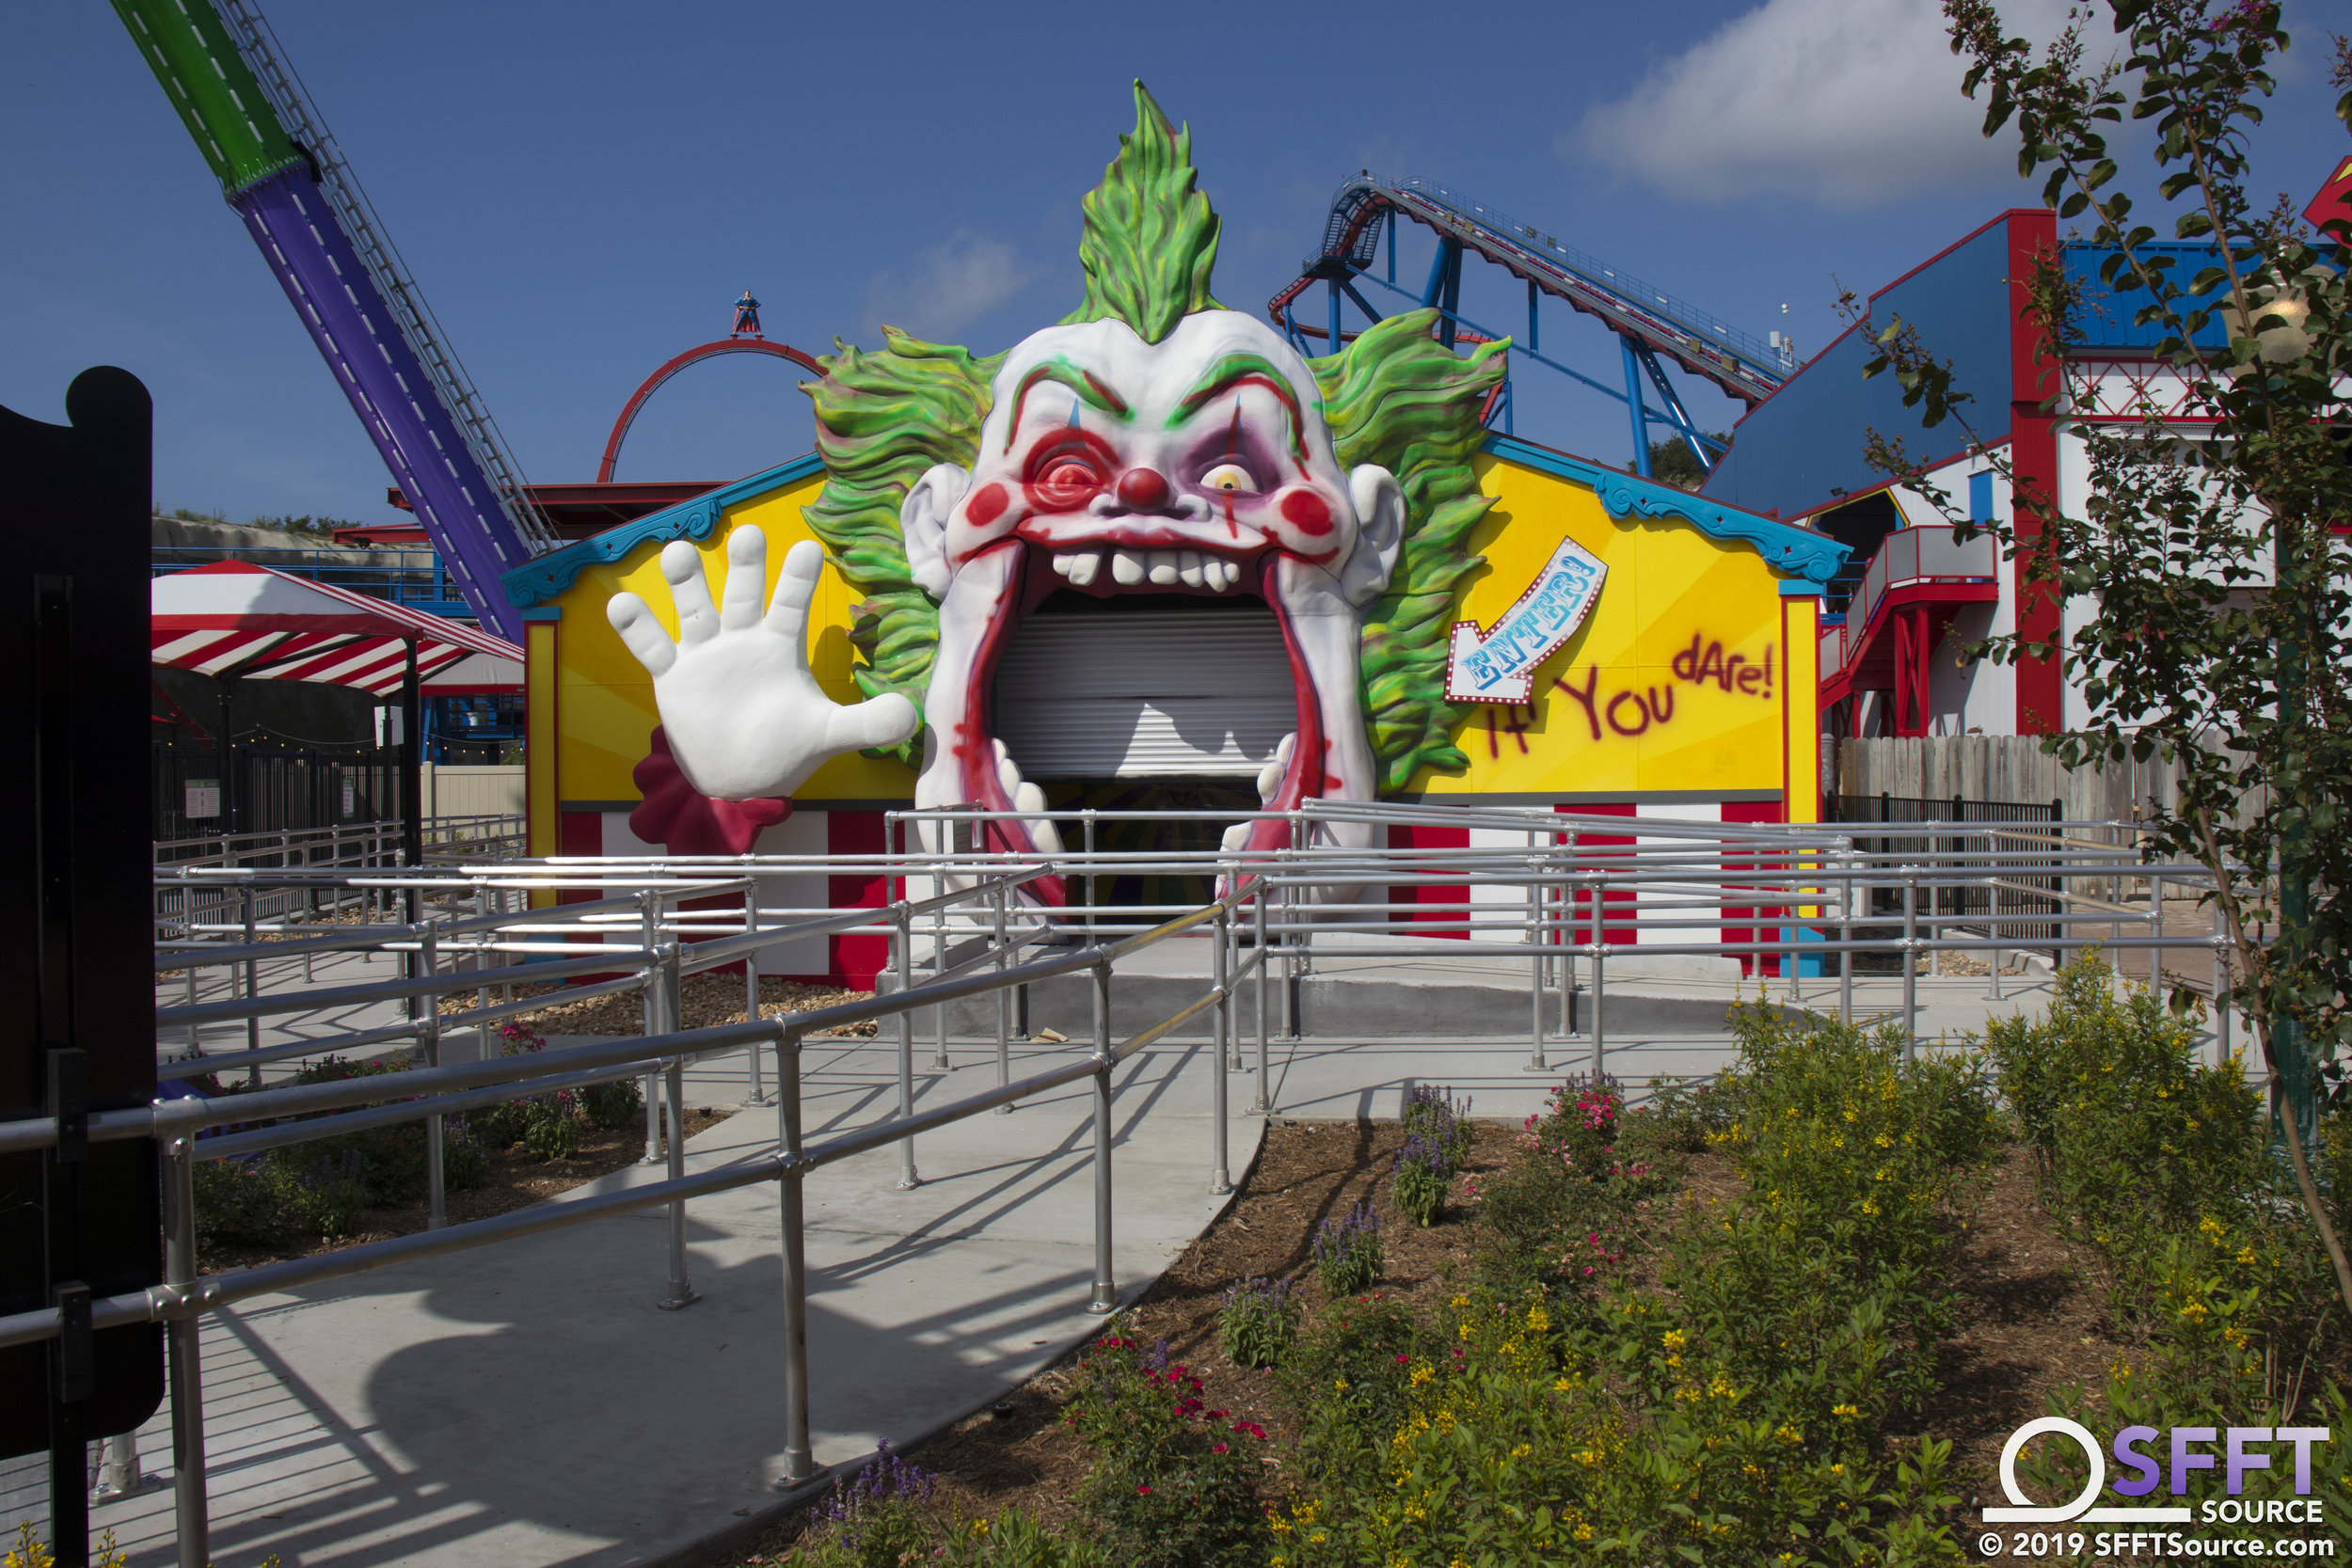 The Joker Carnival of Chaos features an indoor fun house queue.